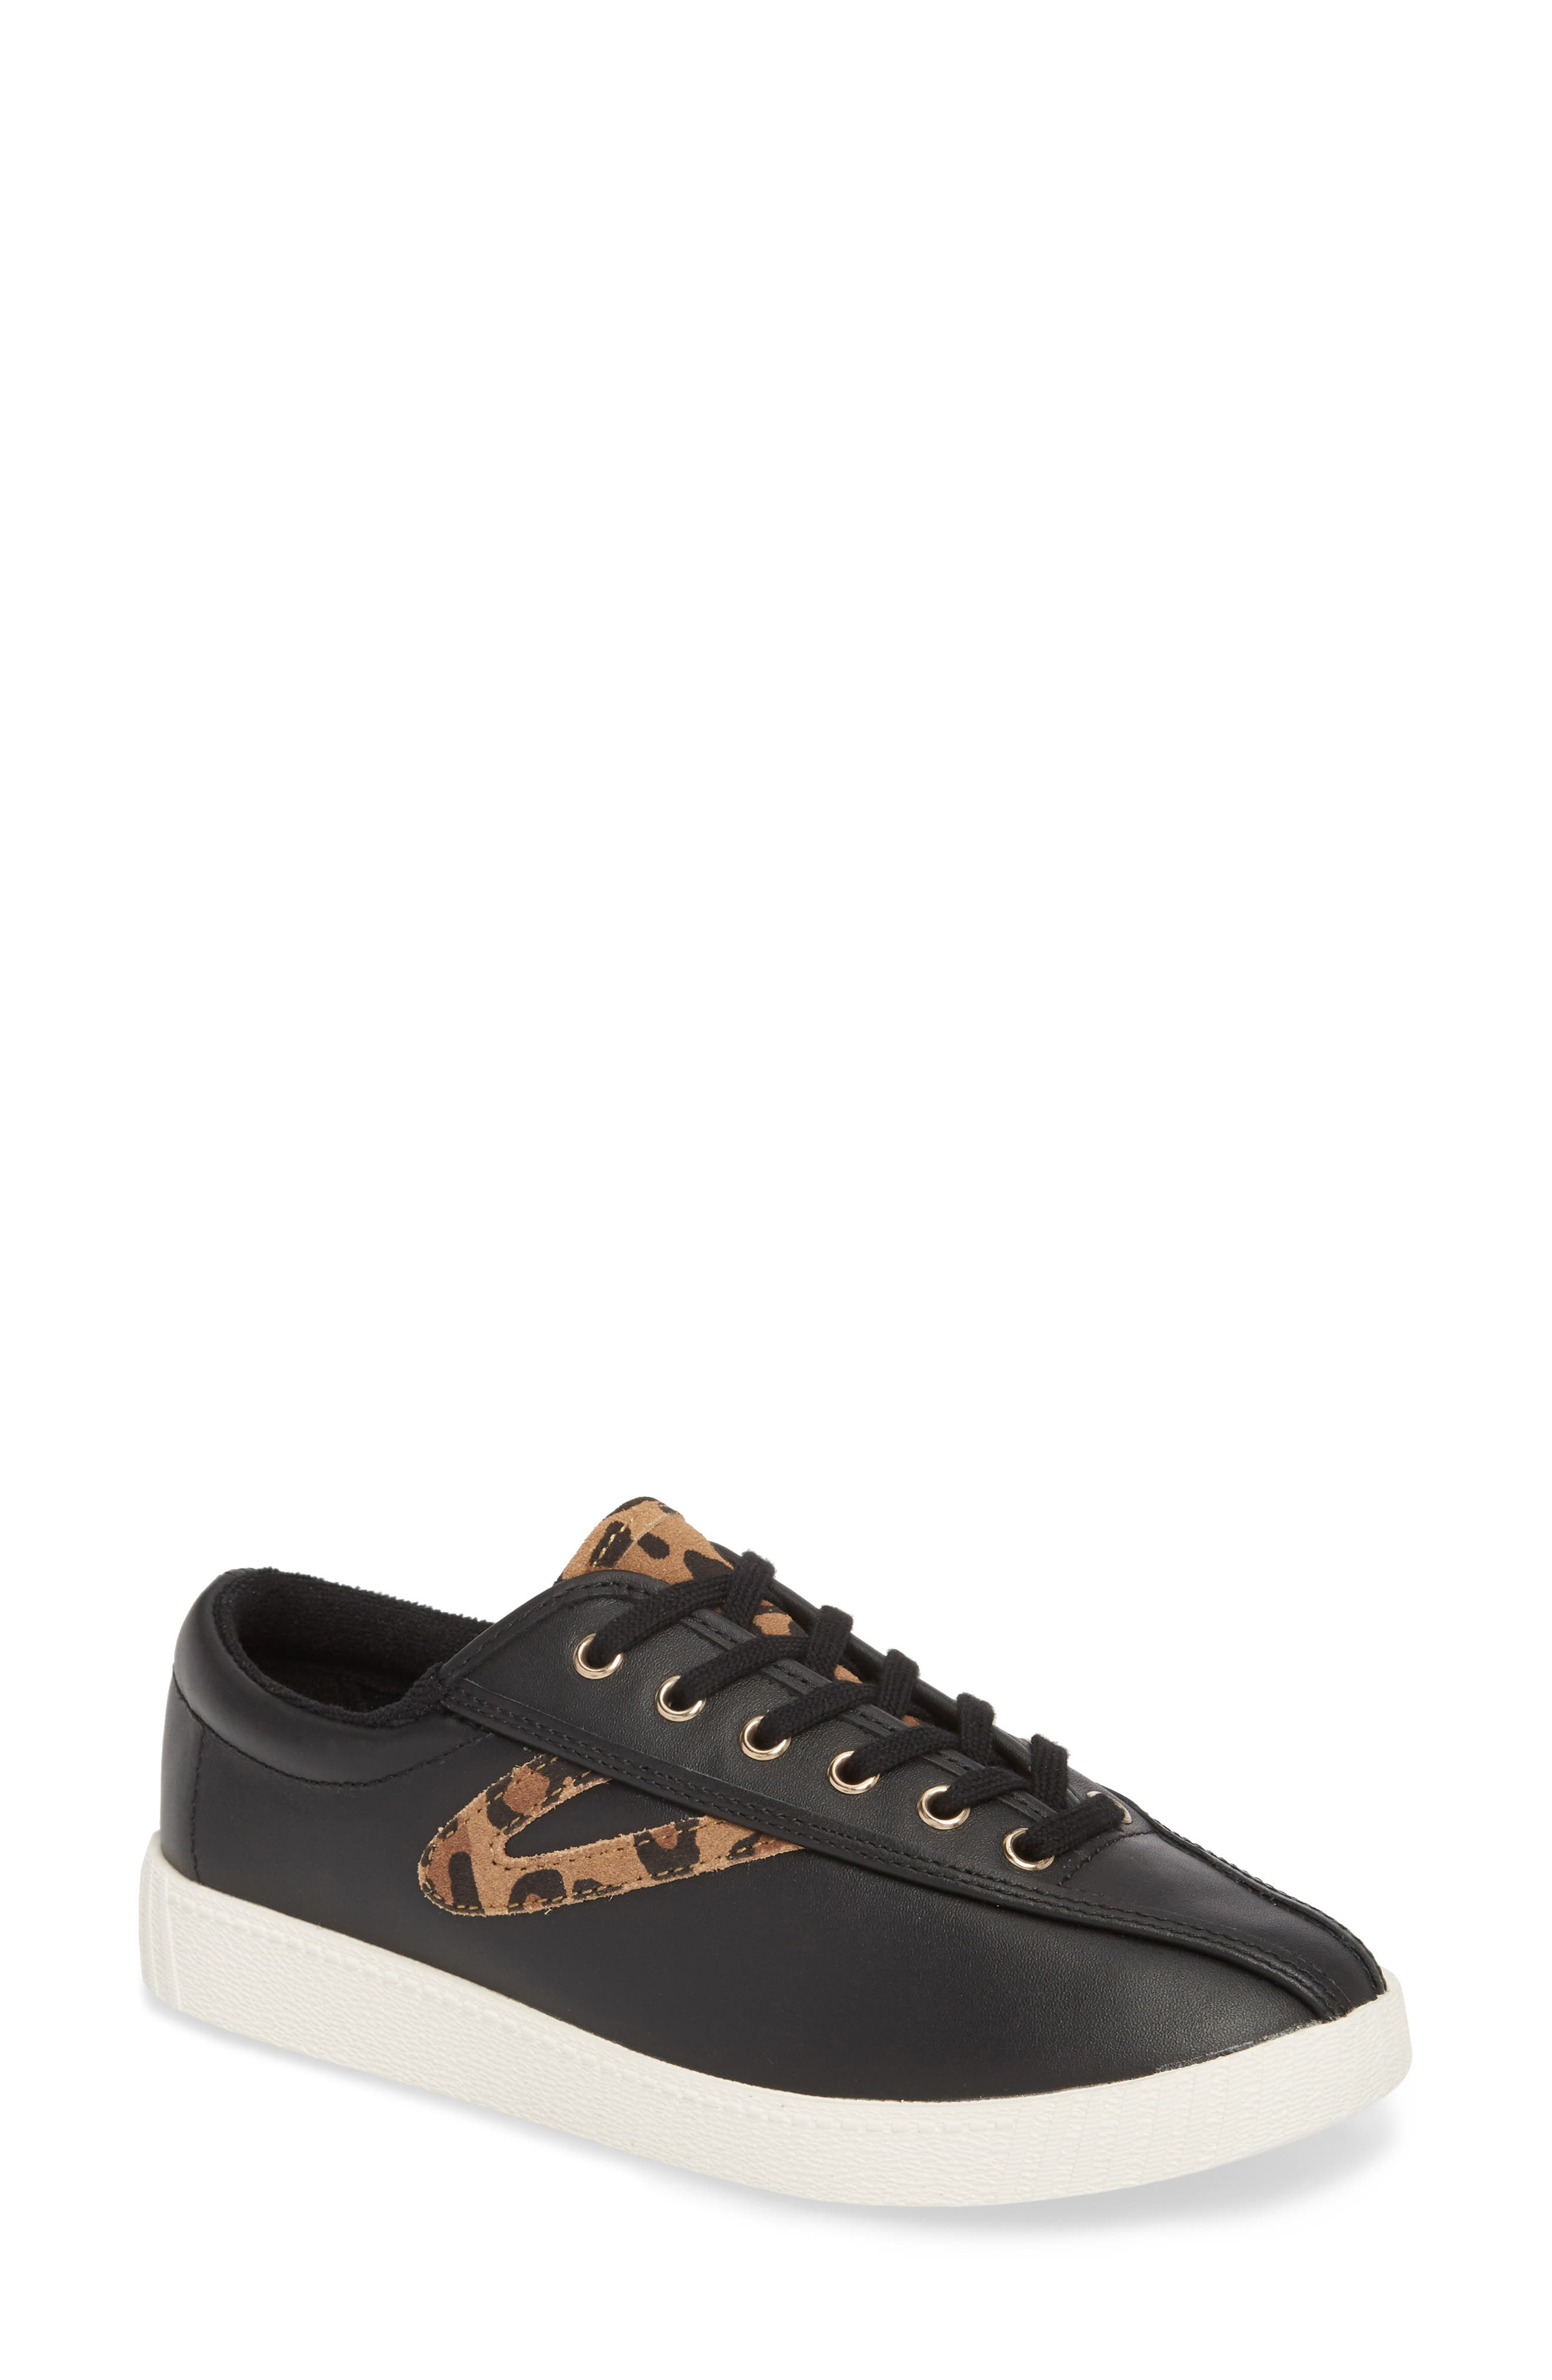 Patterned Sneaker,                             Main thumbnail 1, color,                             BLACK/ TAN/ BLACK LEATHER